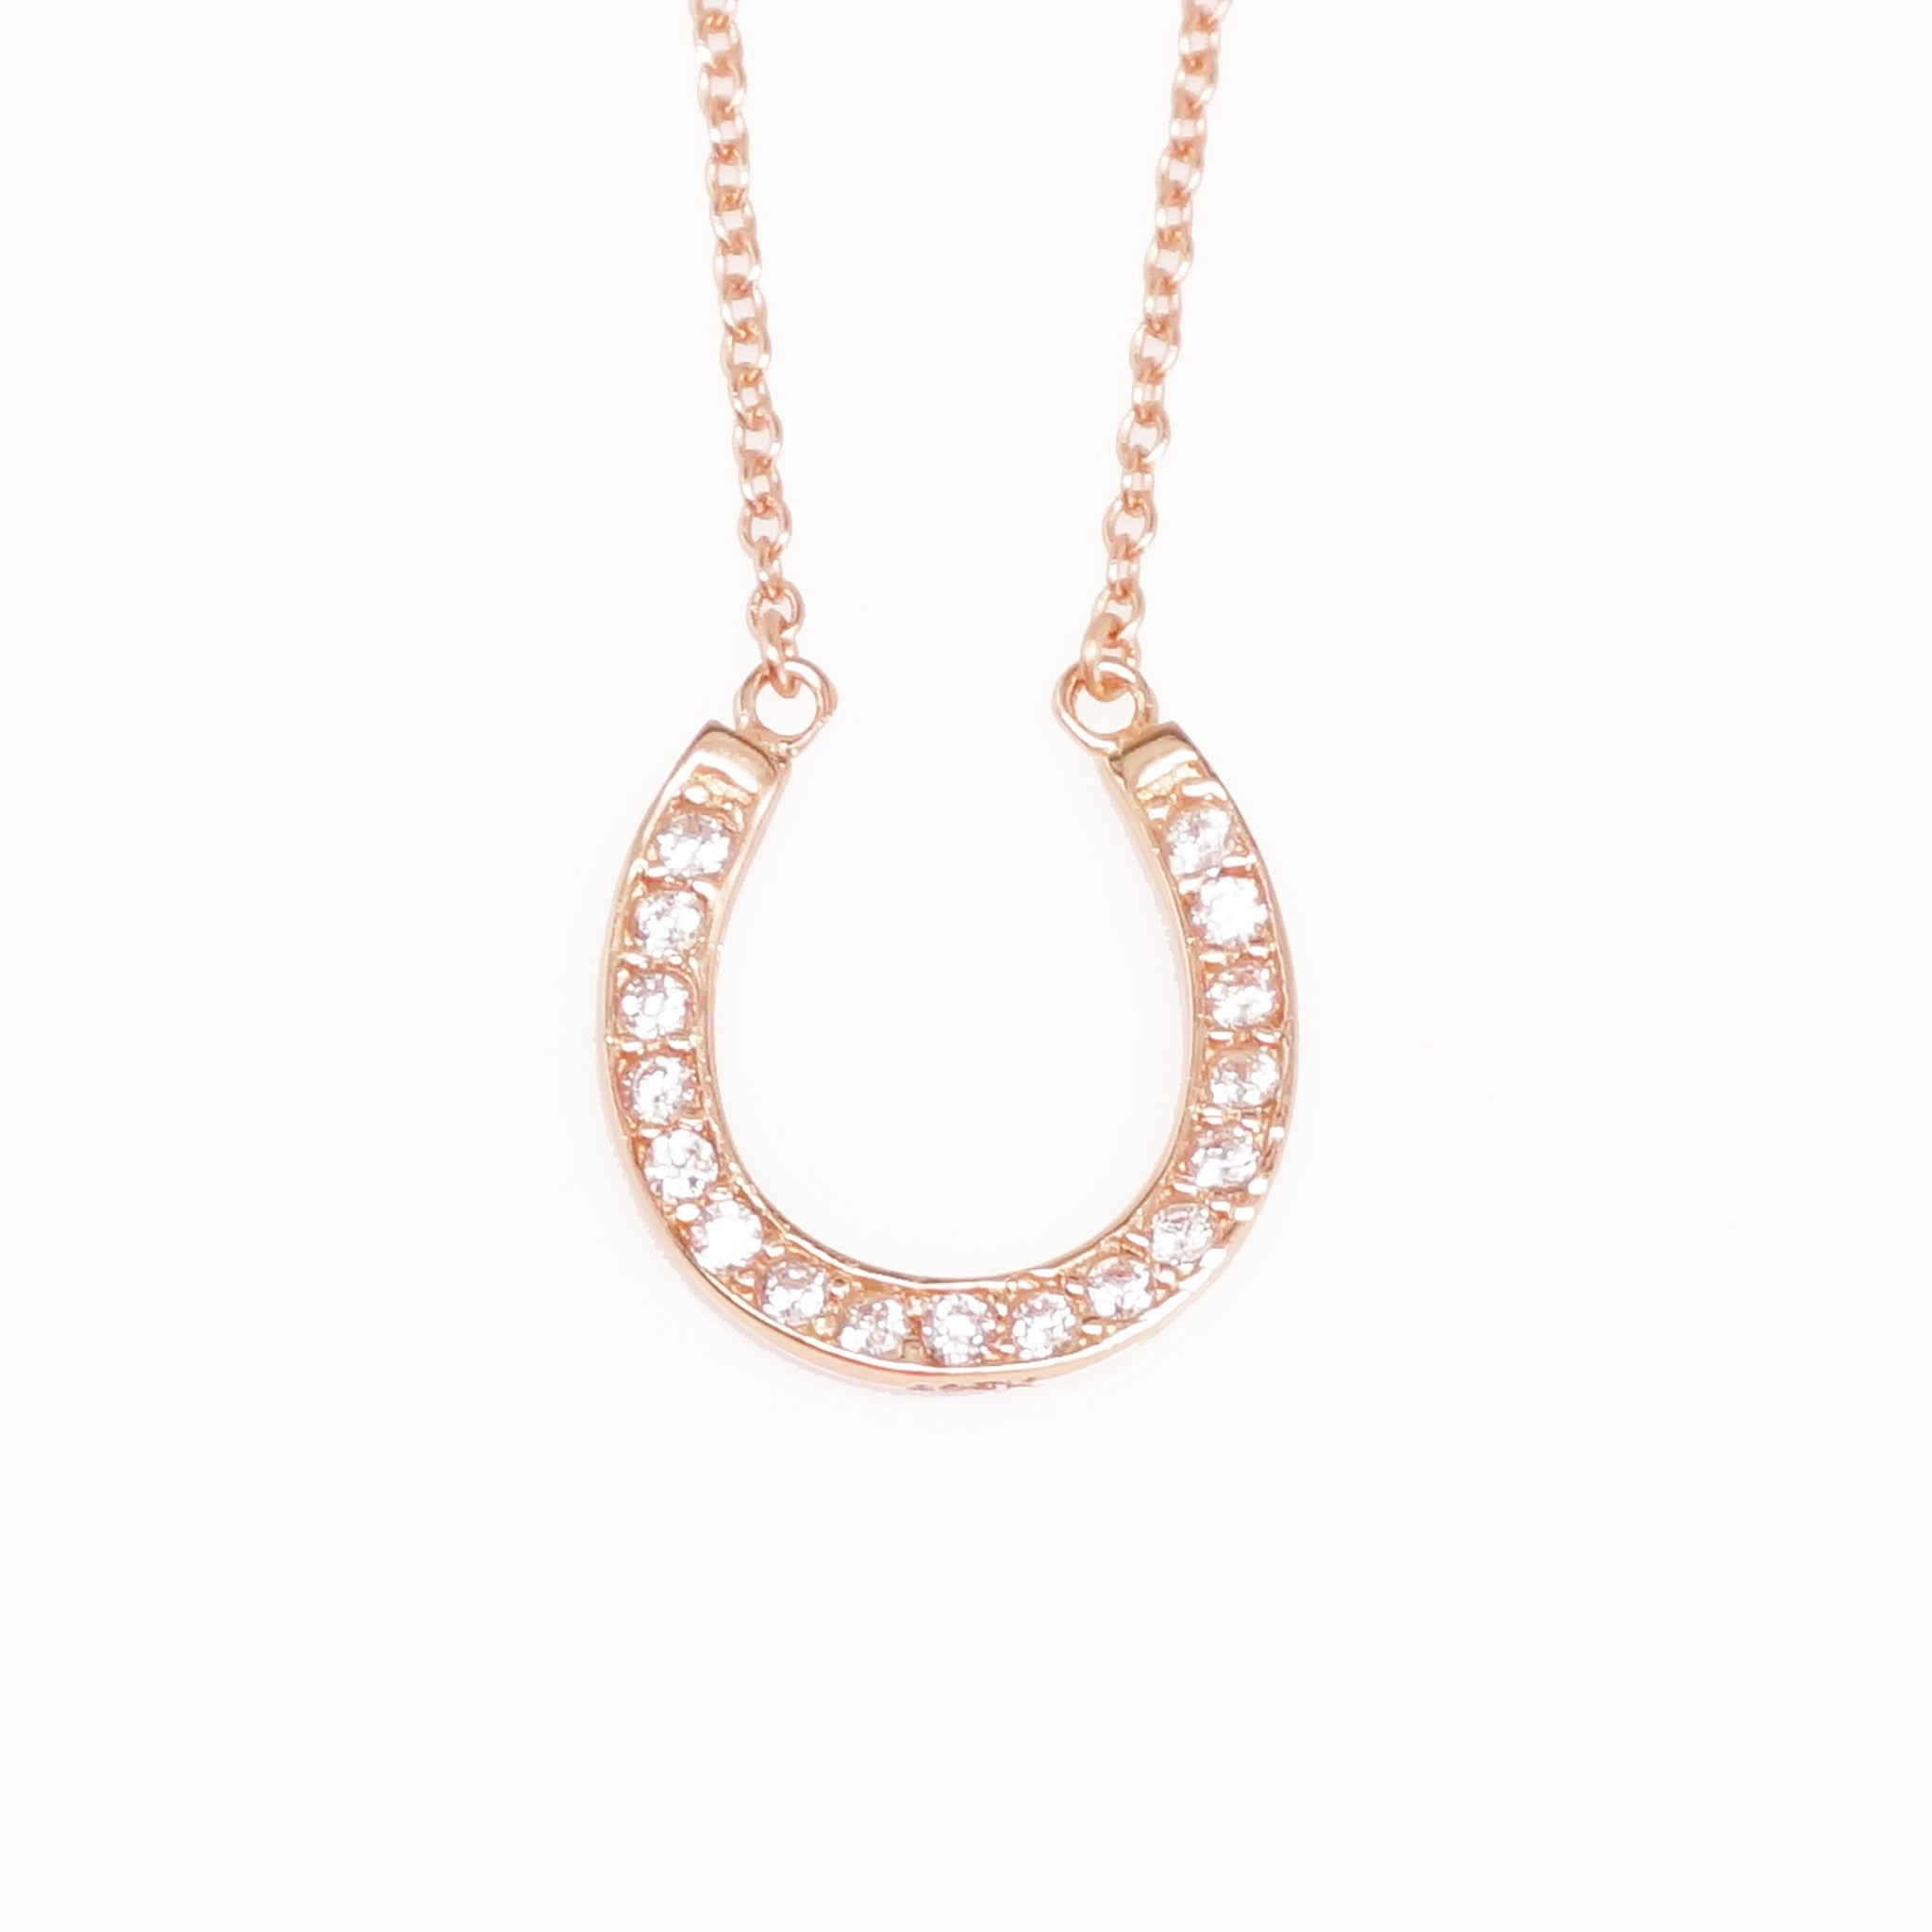 of necklace en horse ladies london hires essentials links horseshoe rose gold ascot diamond gb vermeil